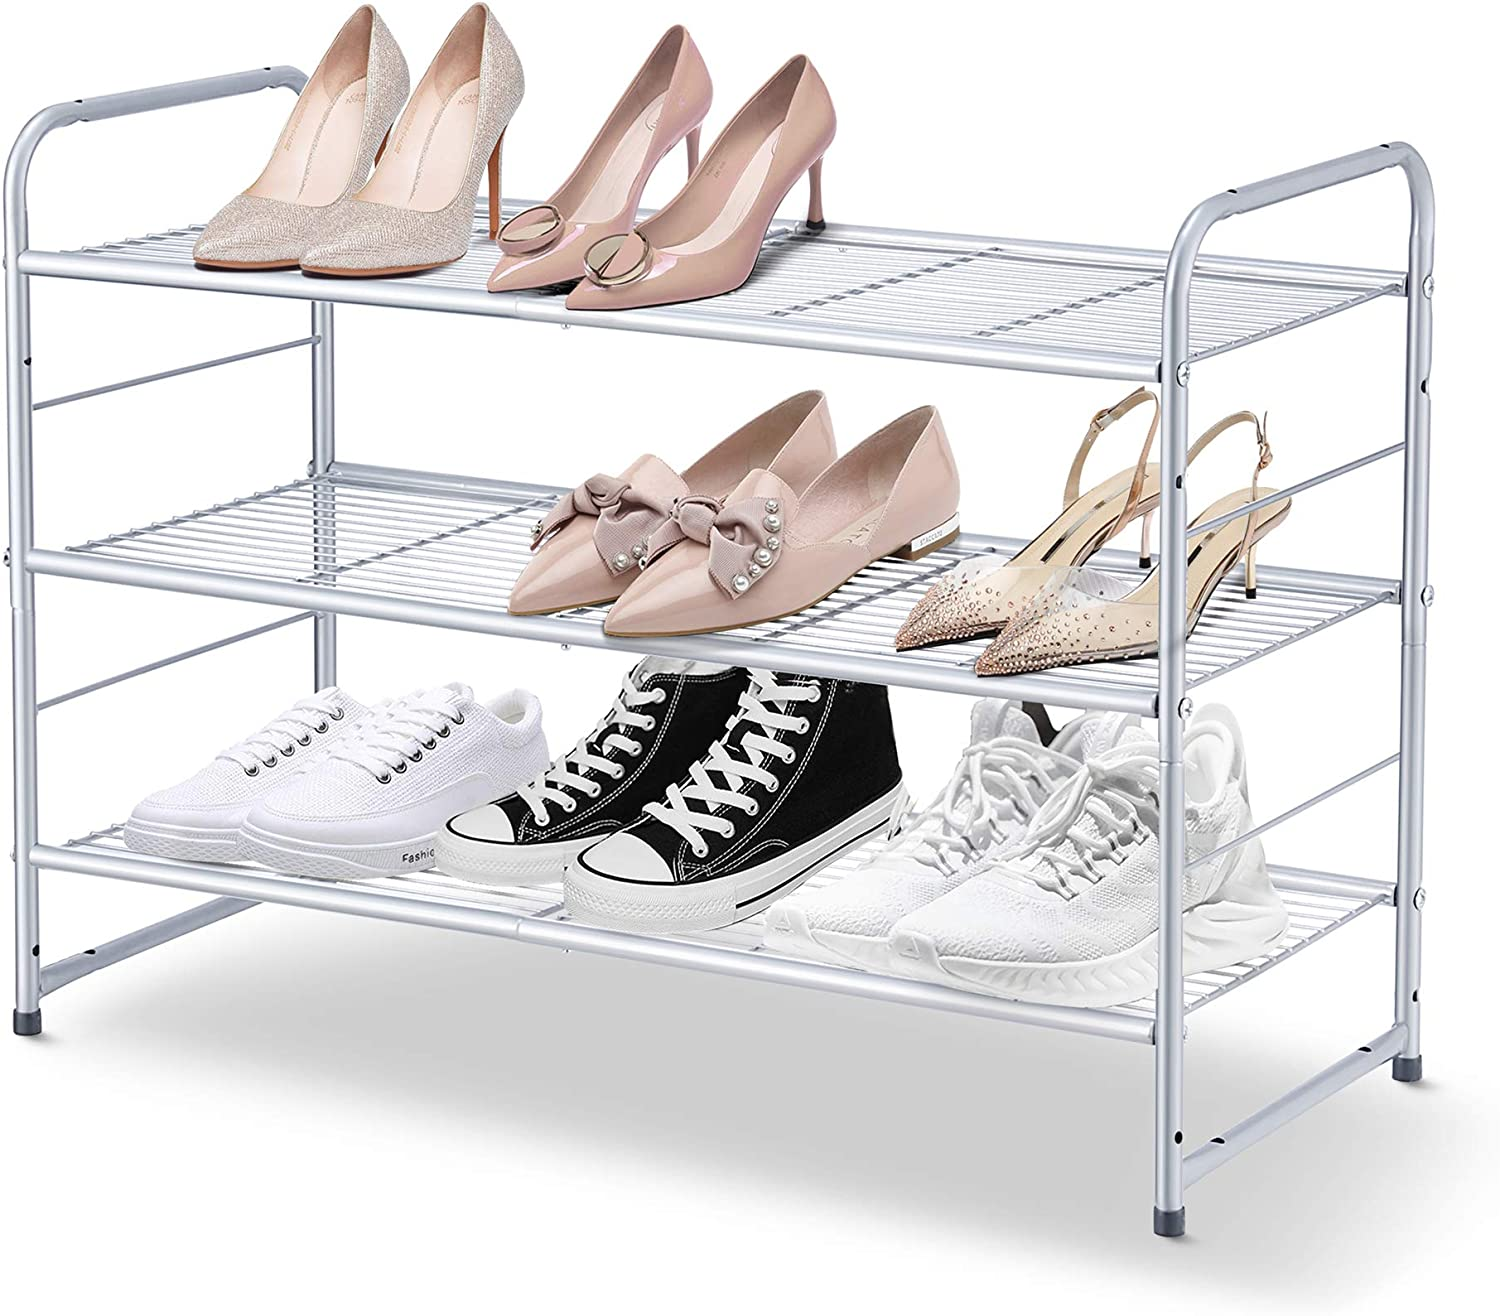 Simple Trending 3-Tier Stackable Shoe Rack, Expandable & Adjustable Shoe Shelf Storage Organizer, Wire Grid, Silver